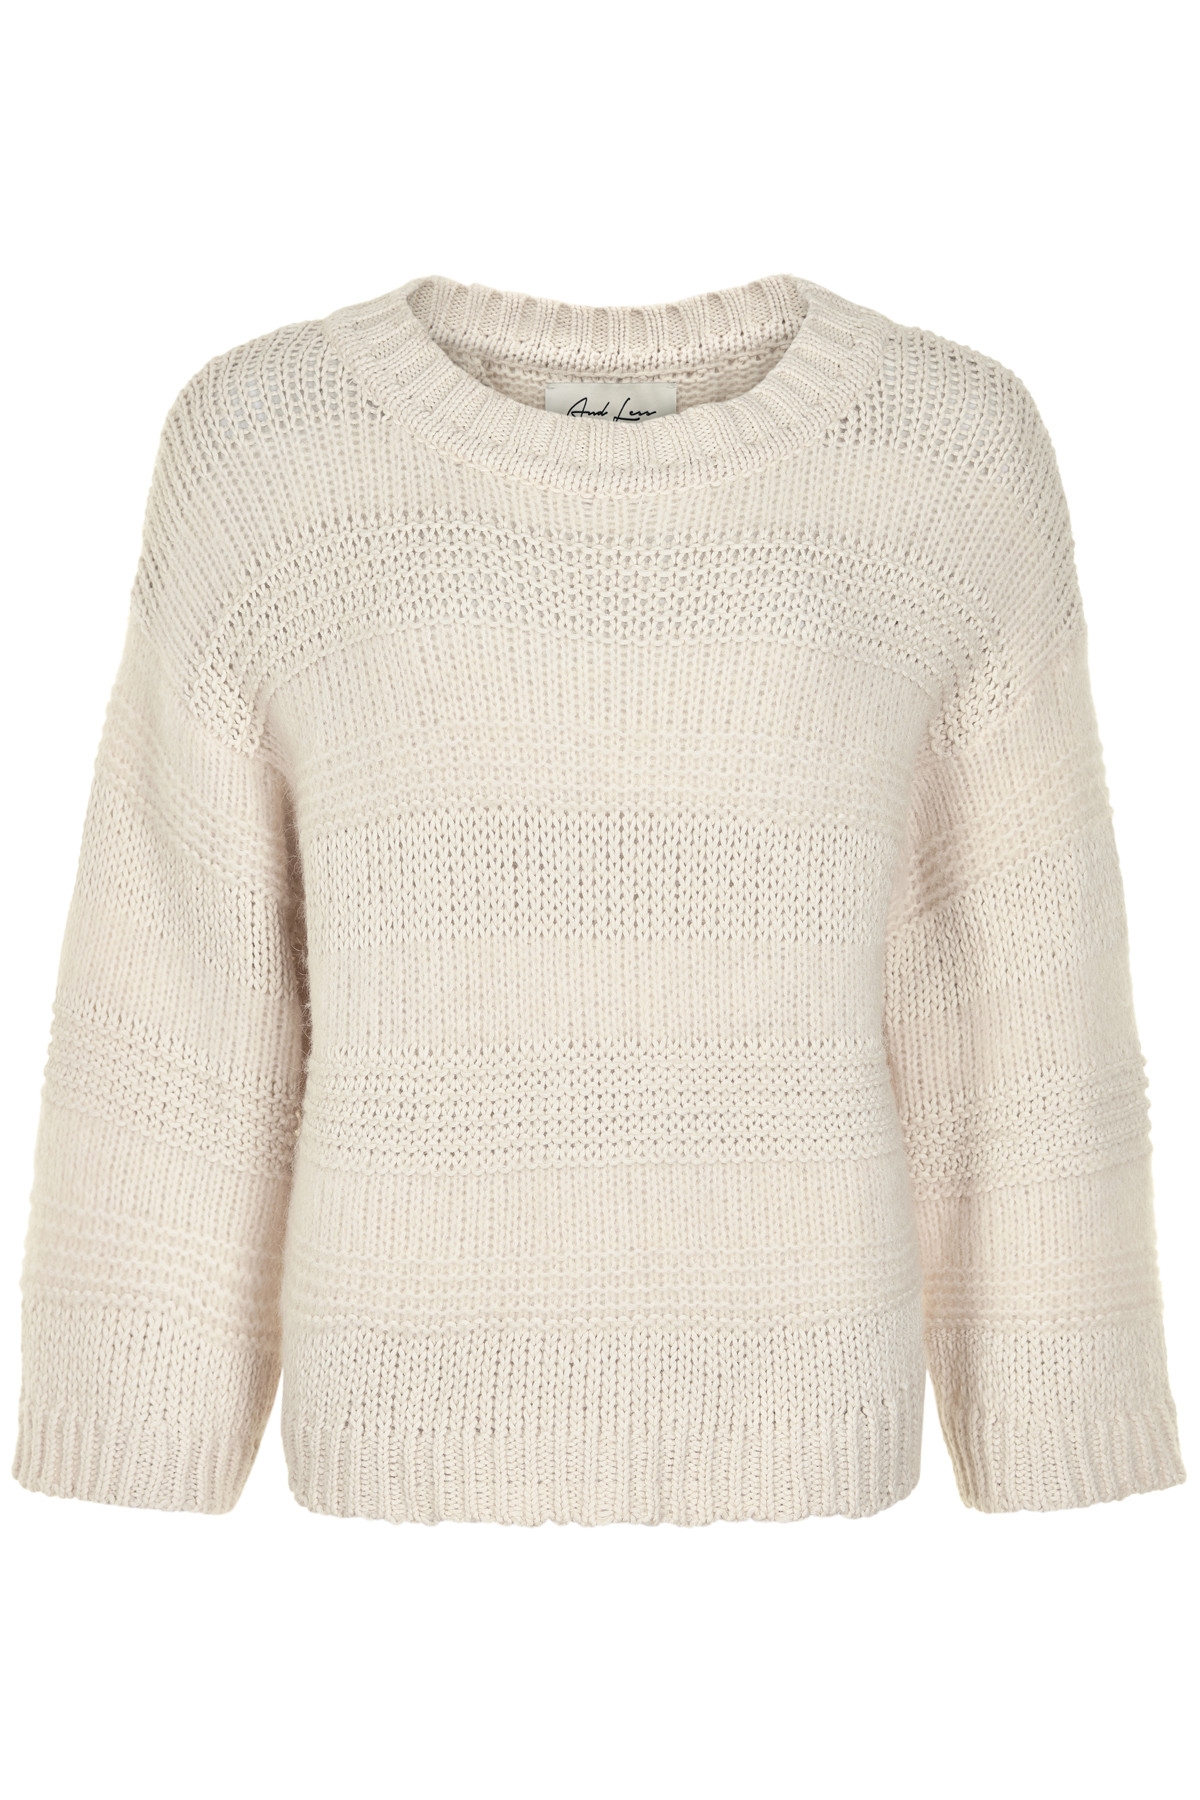 Image of   AND LESS CHAIMA PULLOVER 5419203 (W. Allysum, L)